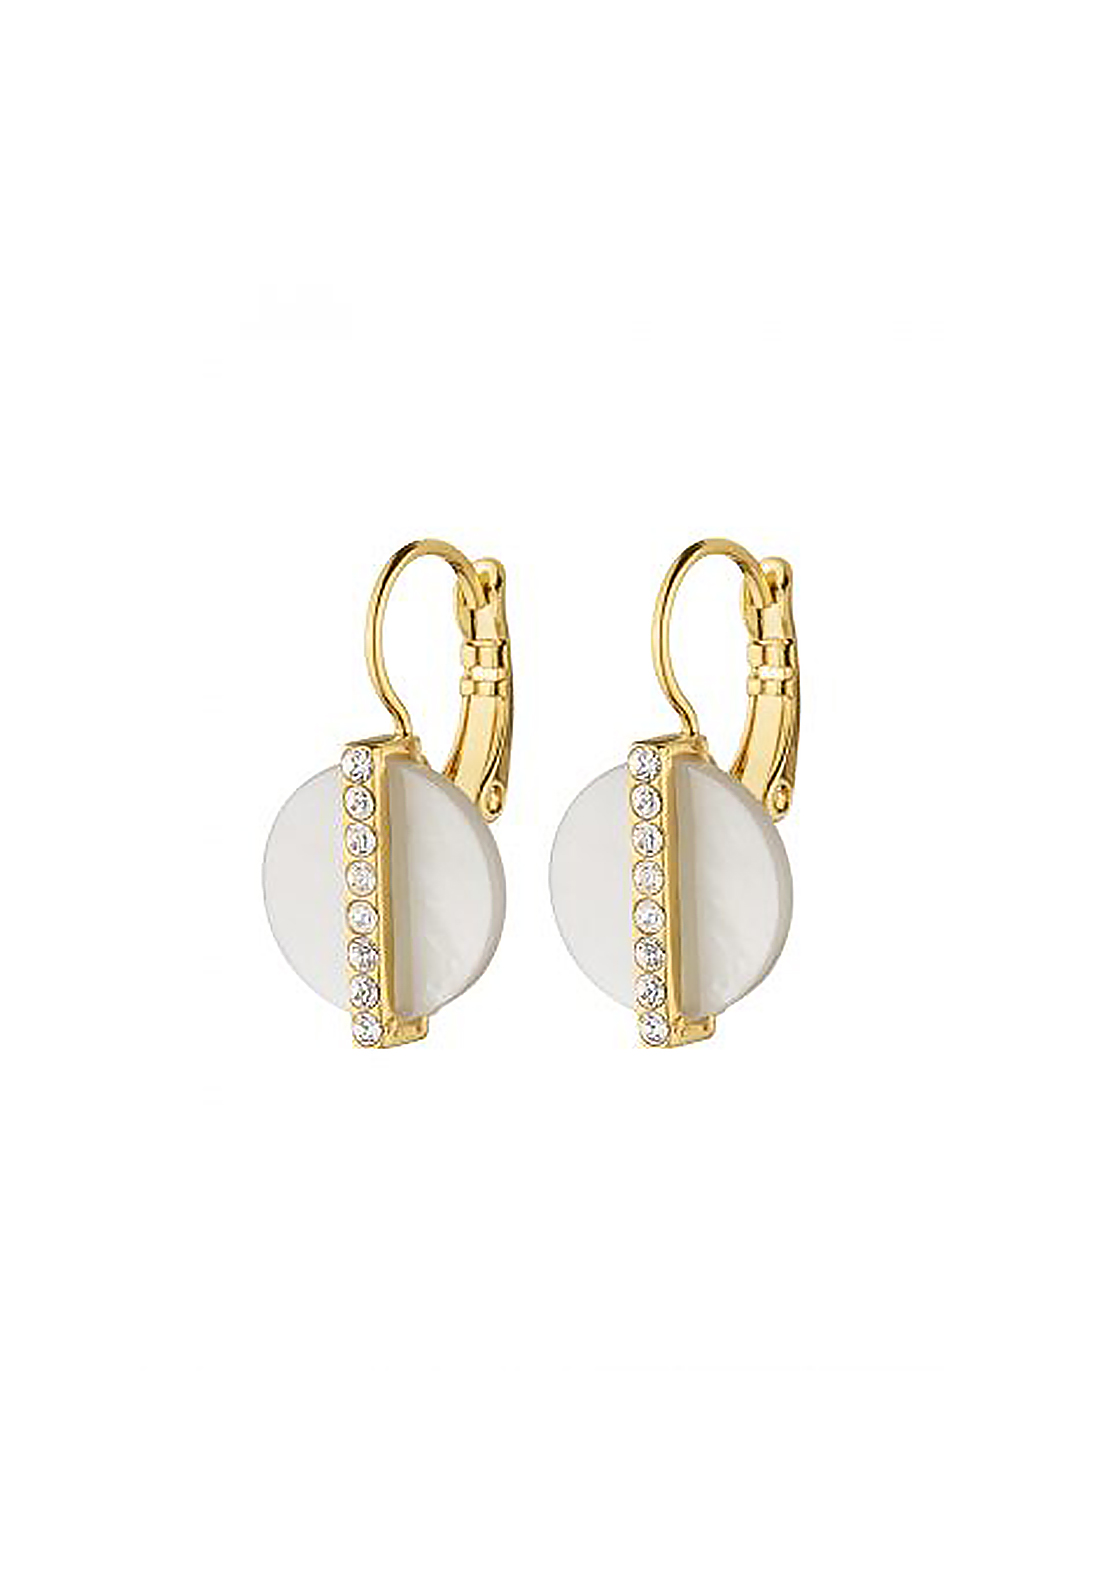 Dyrberg Kern Zante Disc French Hook Earrings, Gold